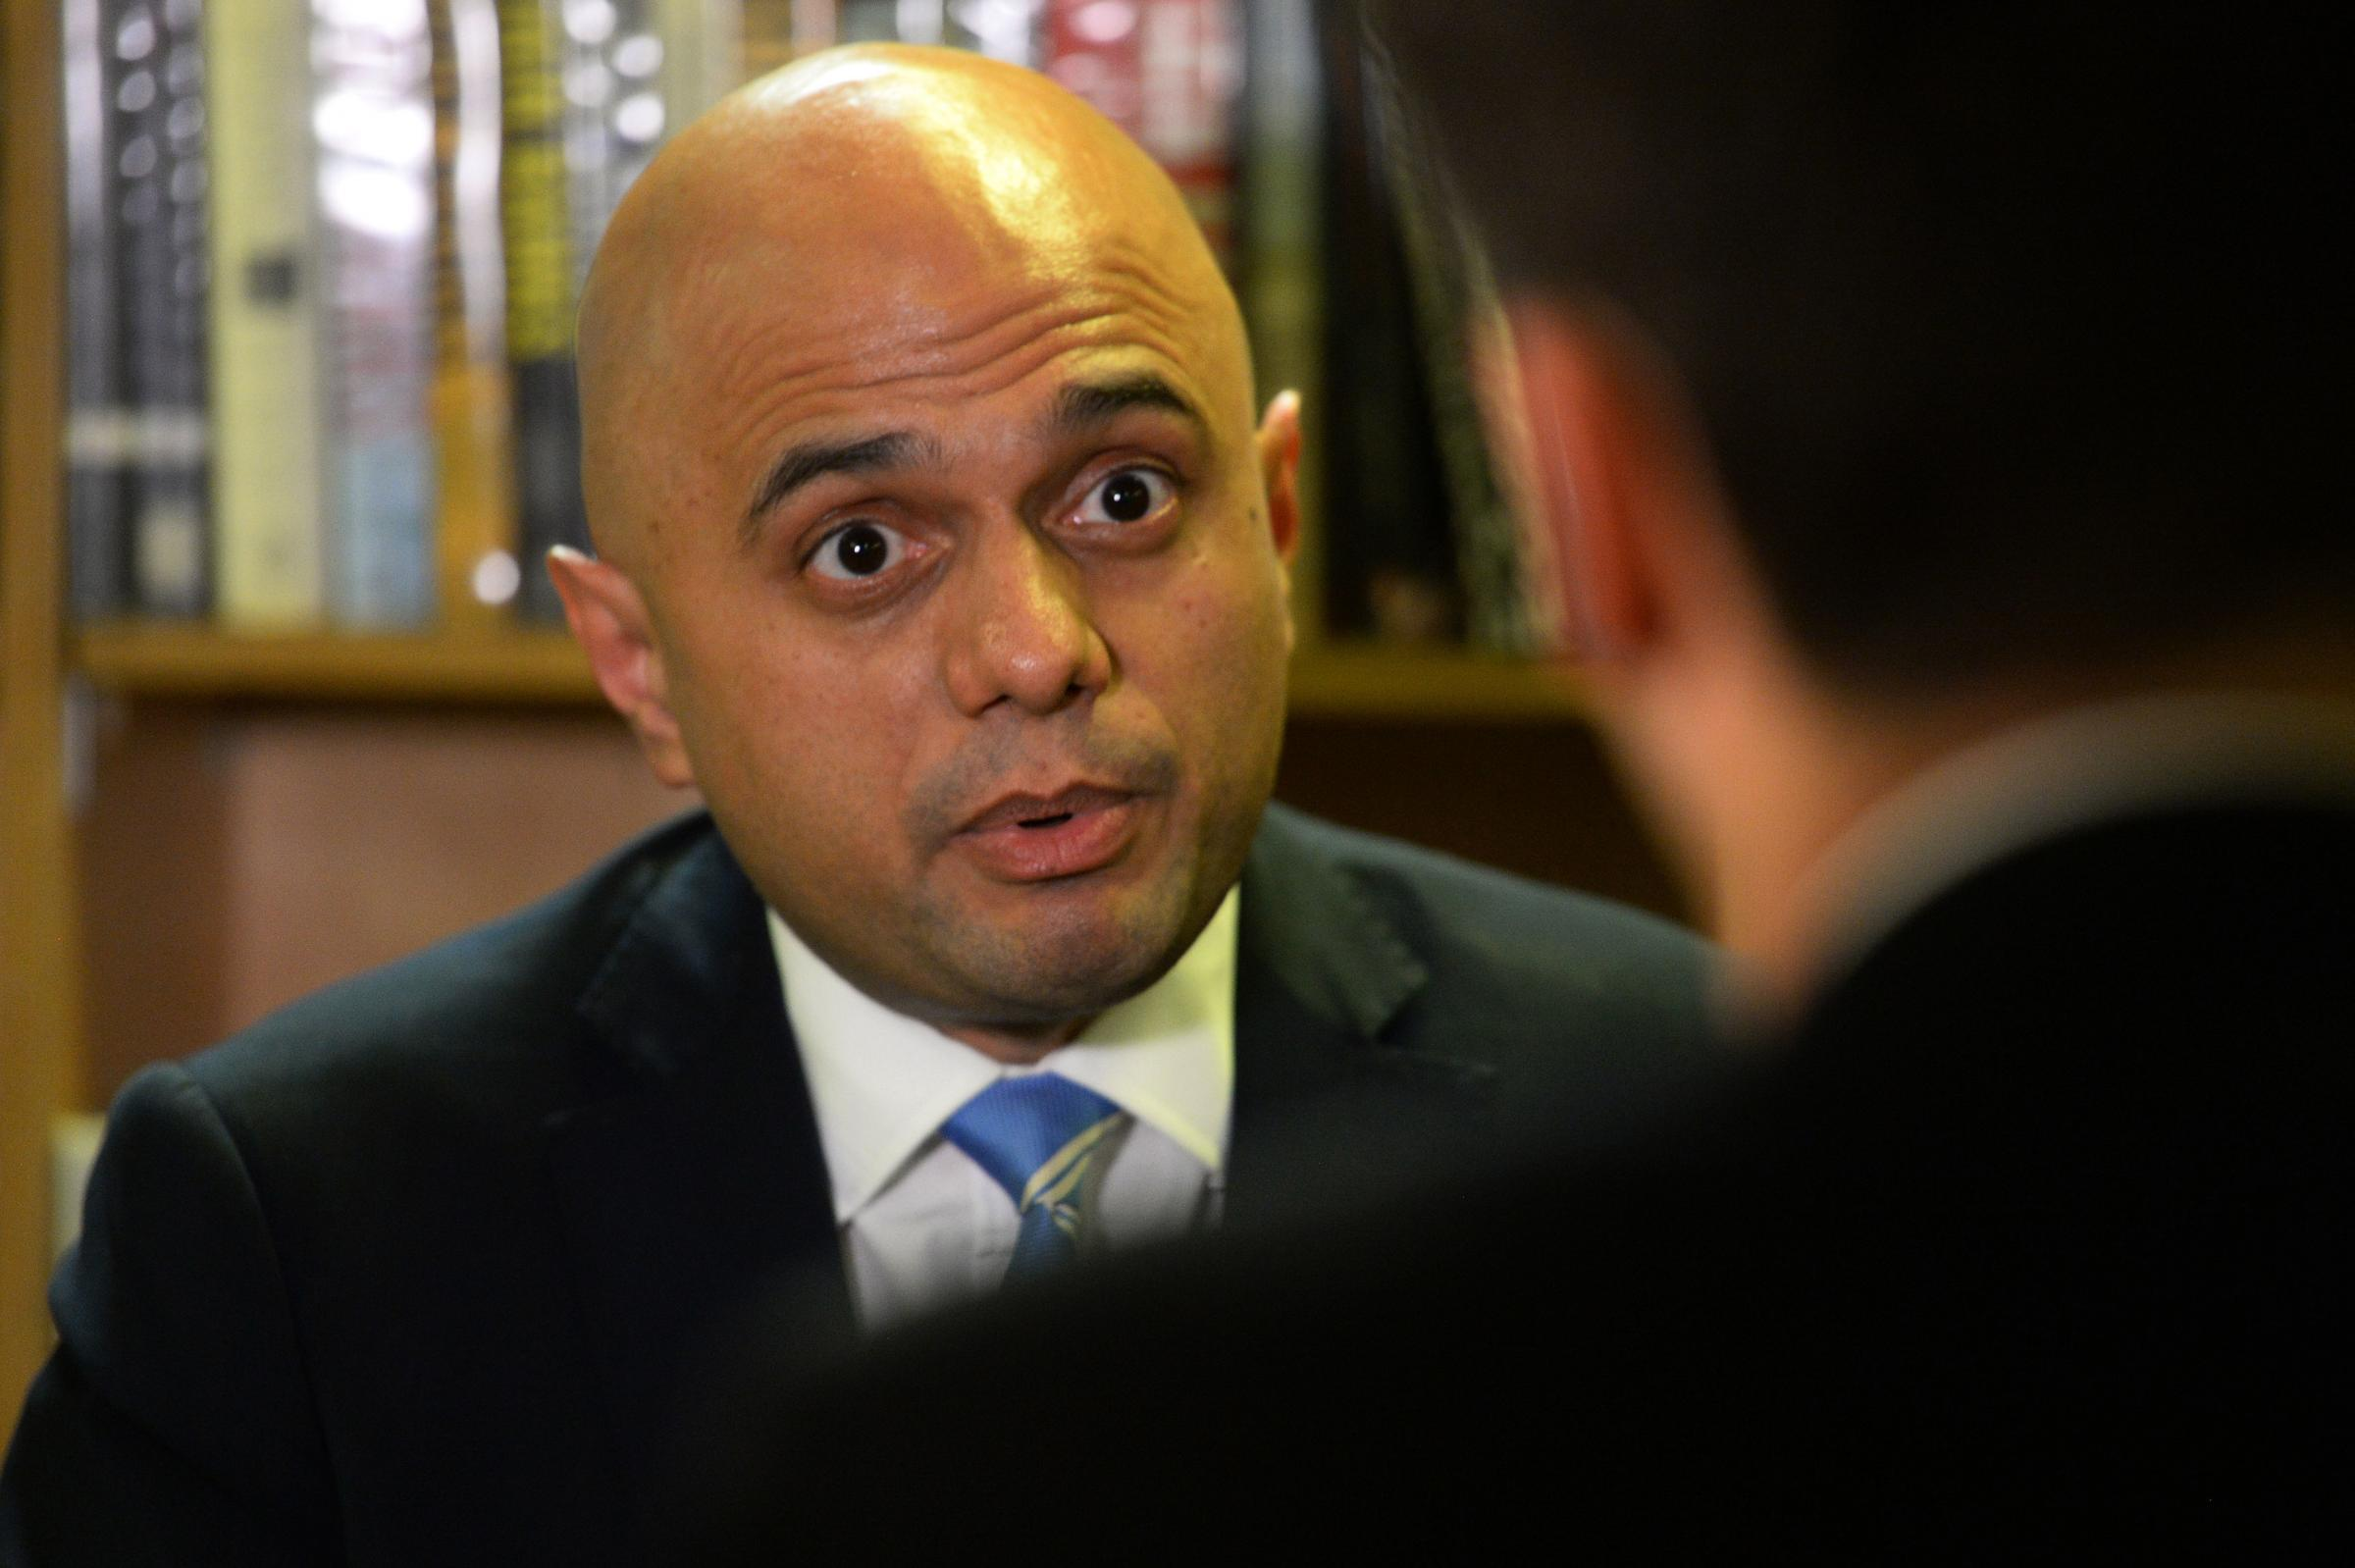 Home Secretary Sajid Javid during a round table discussion on the Prevent anti-terror scheme, at the Chrisp Street Ideas Store in Poplar, London.